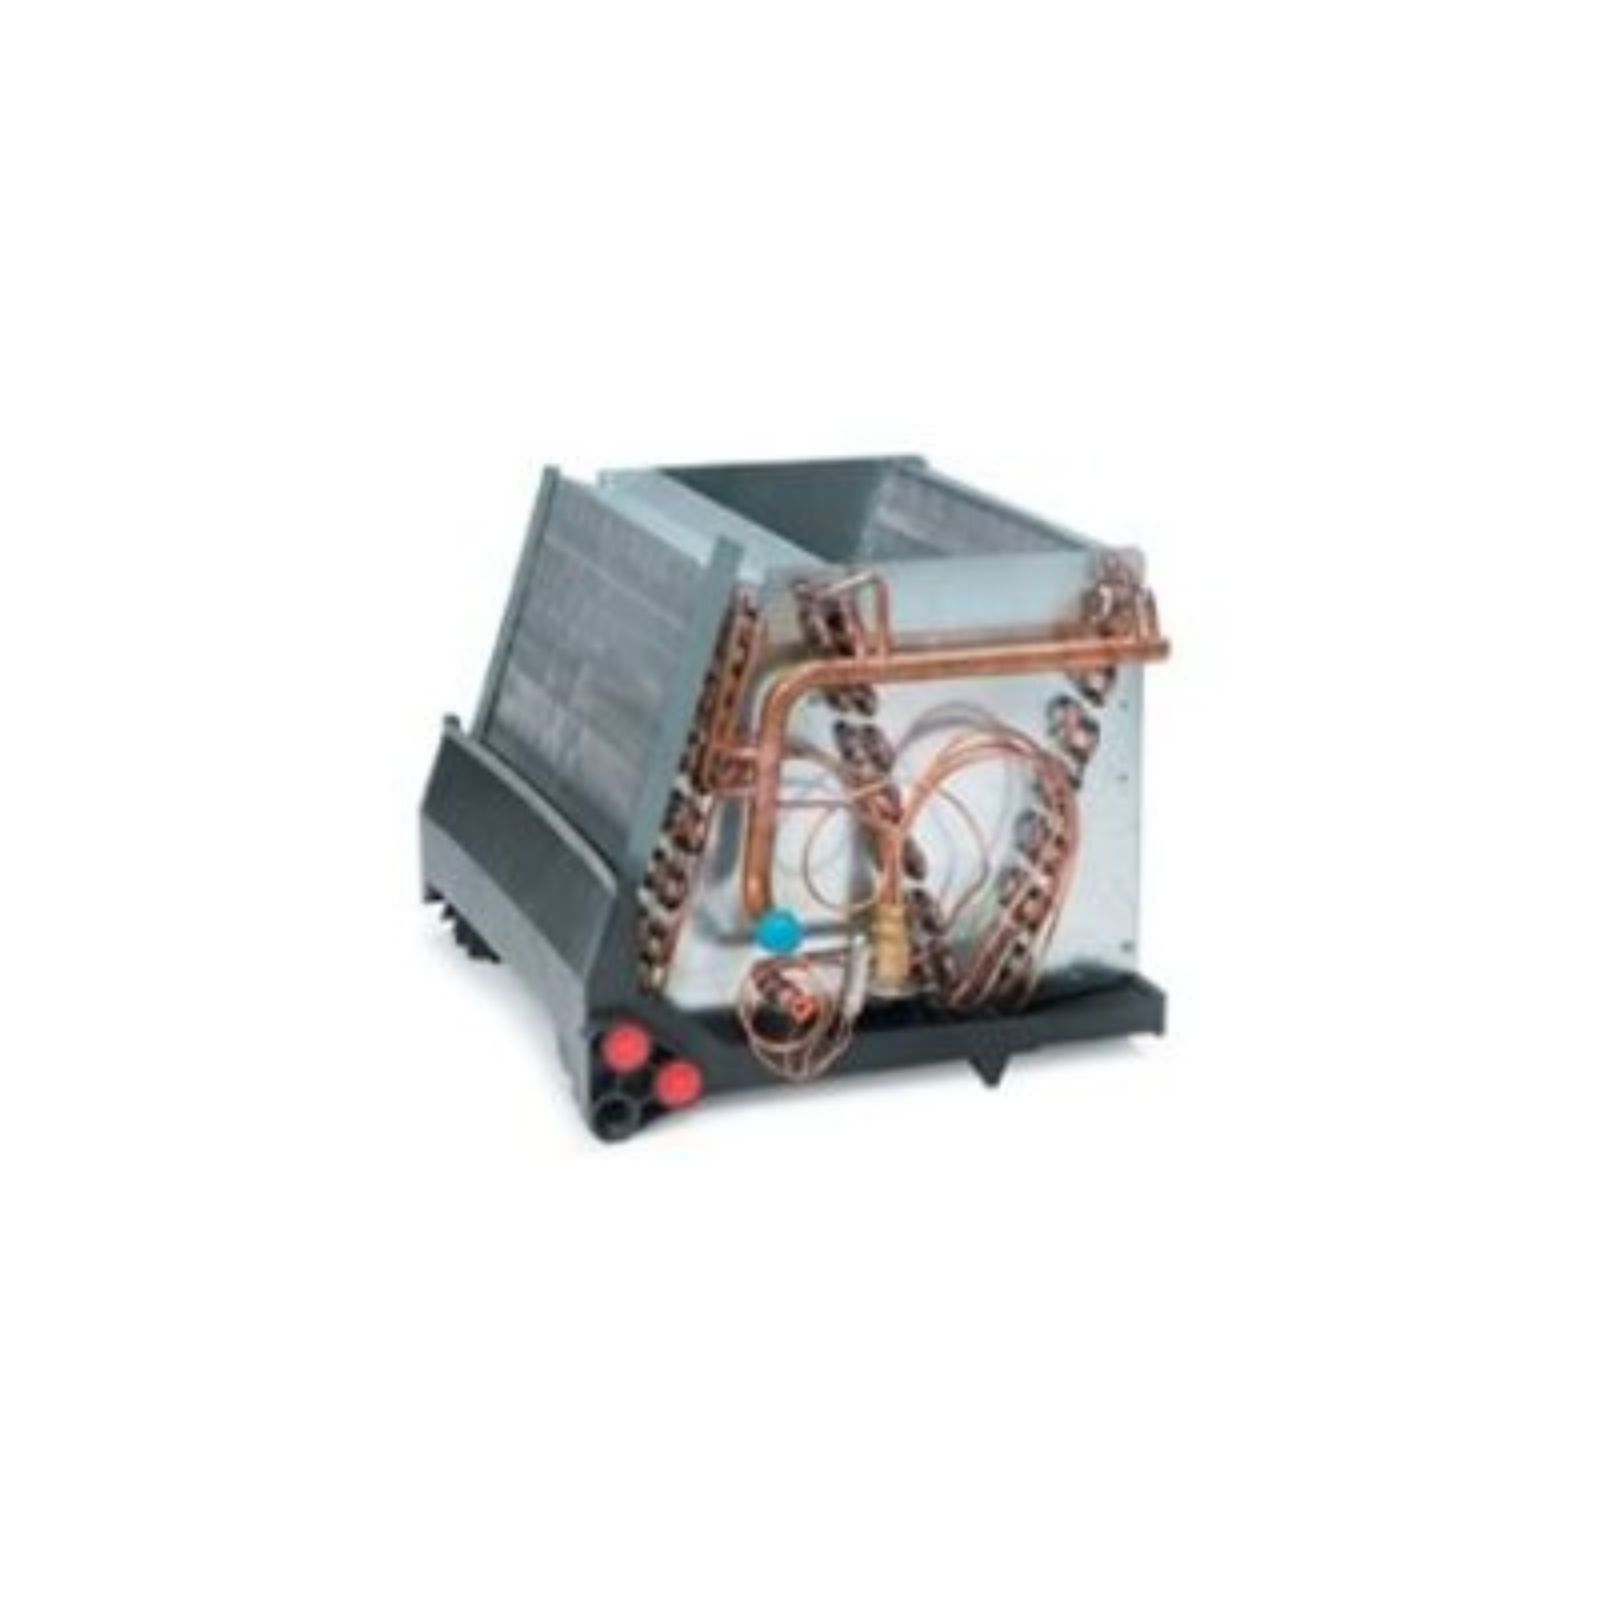 "Rheem RCSM-HU2421AU - 2 Ton 16 SEER 21"" Replacement Upflow/Downflow Uncased Coil - R410A for use in HPL Air Handlers"